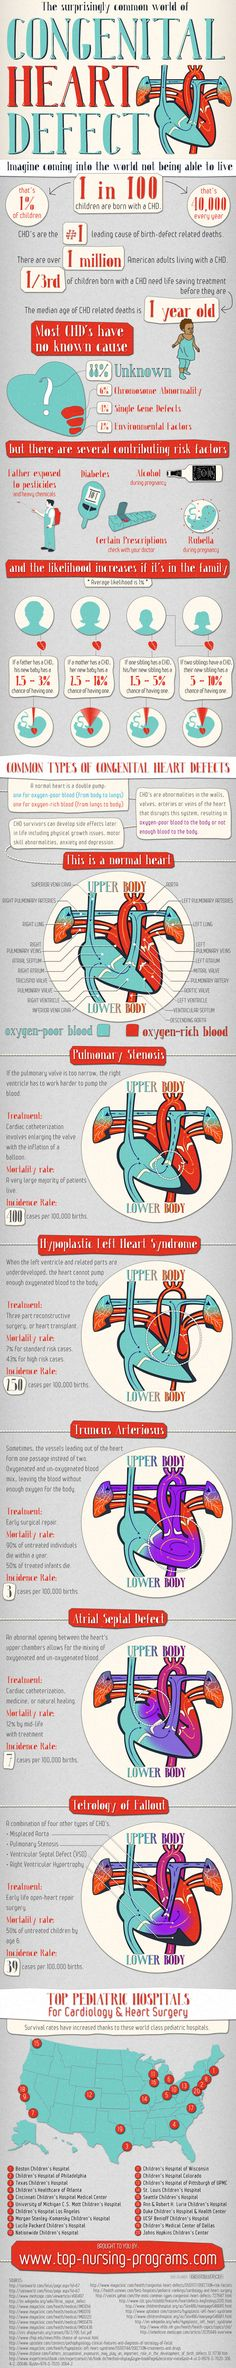 The Surprisingly Common World of Congenital Heart Defect [INFOGRAPHIC]